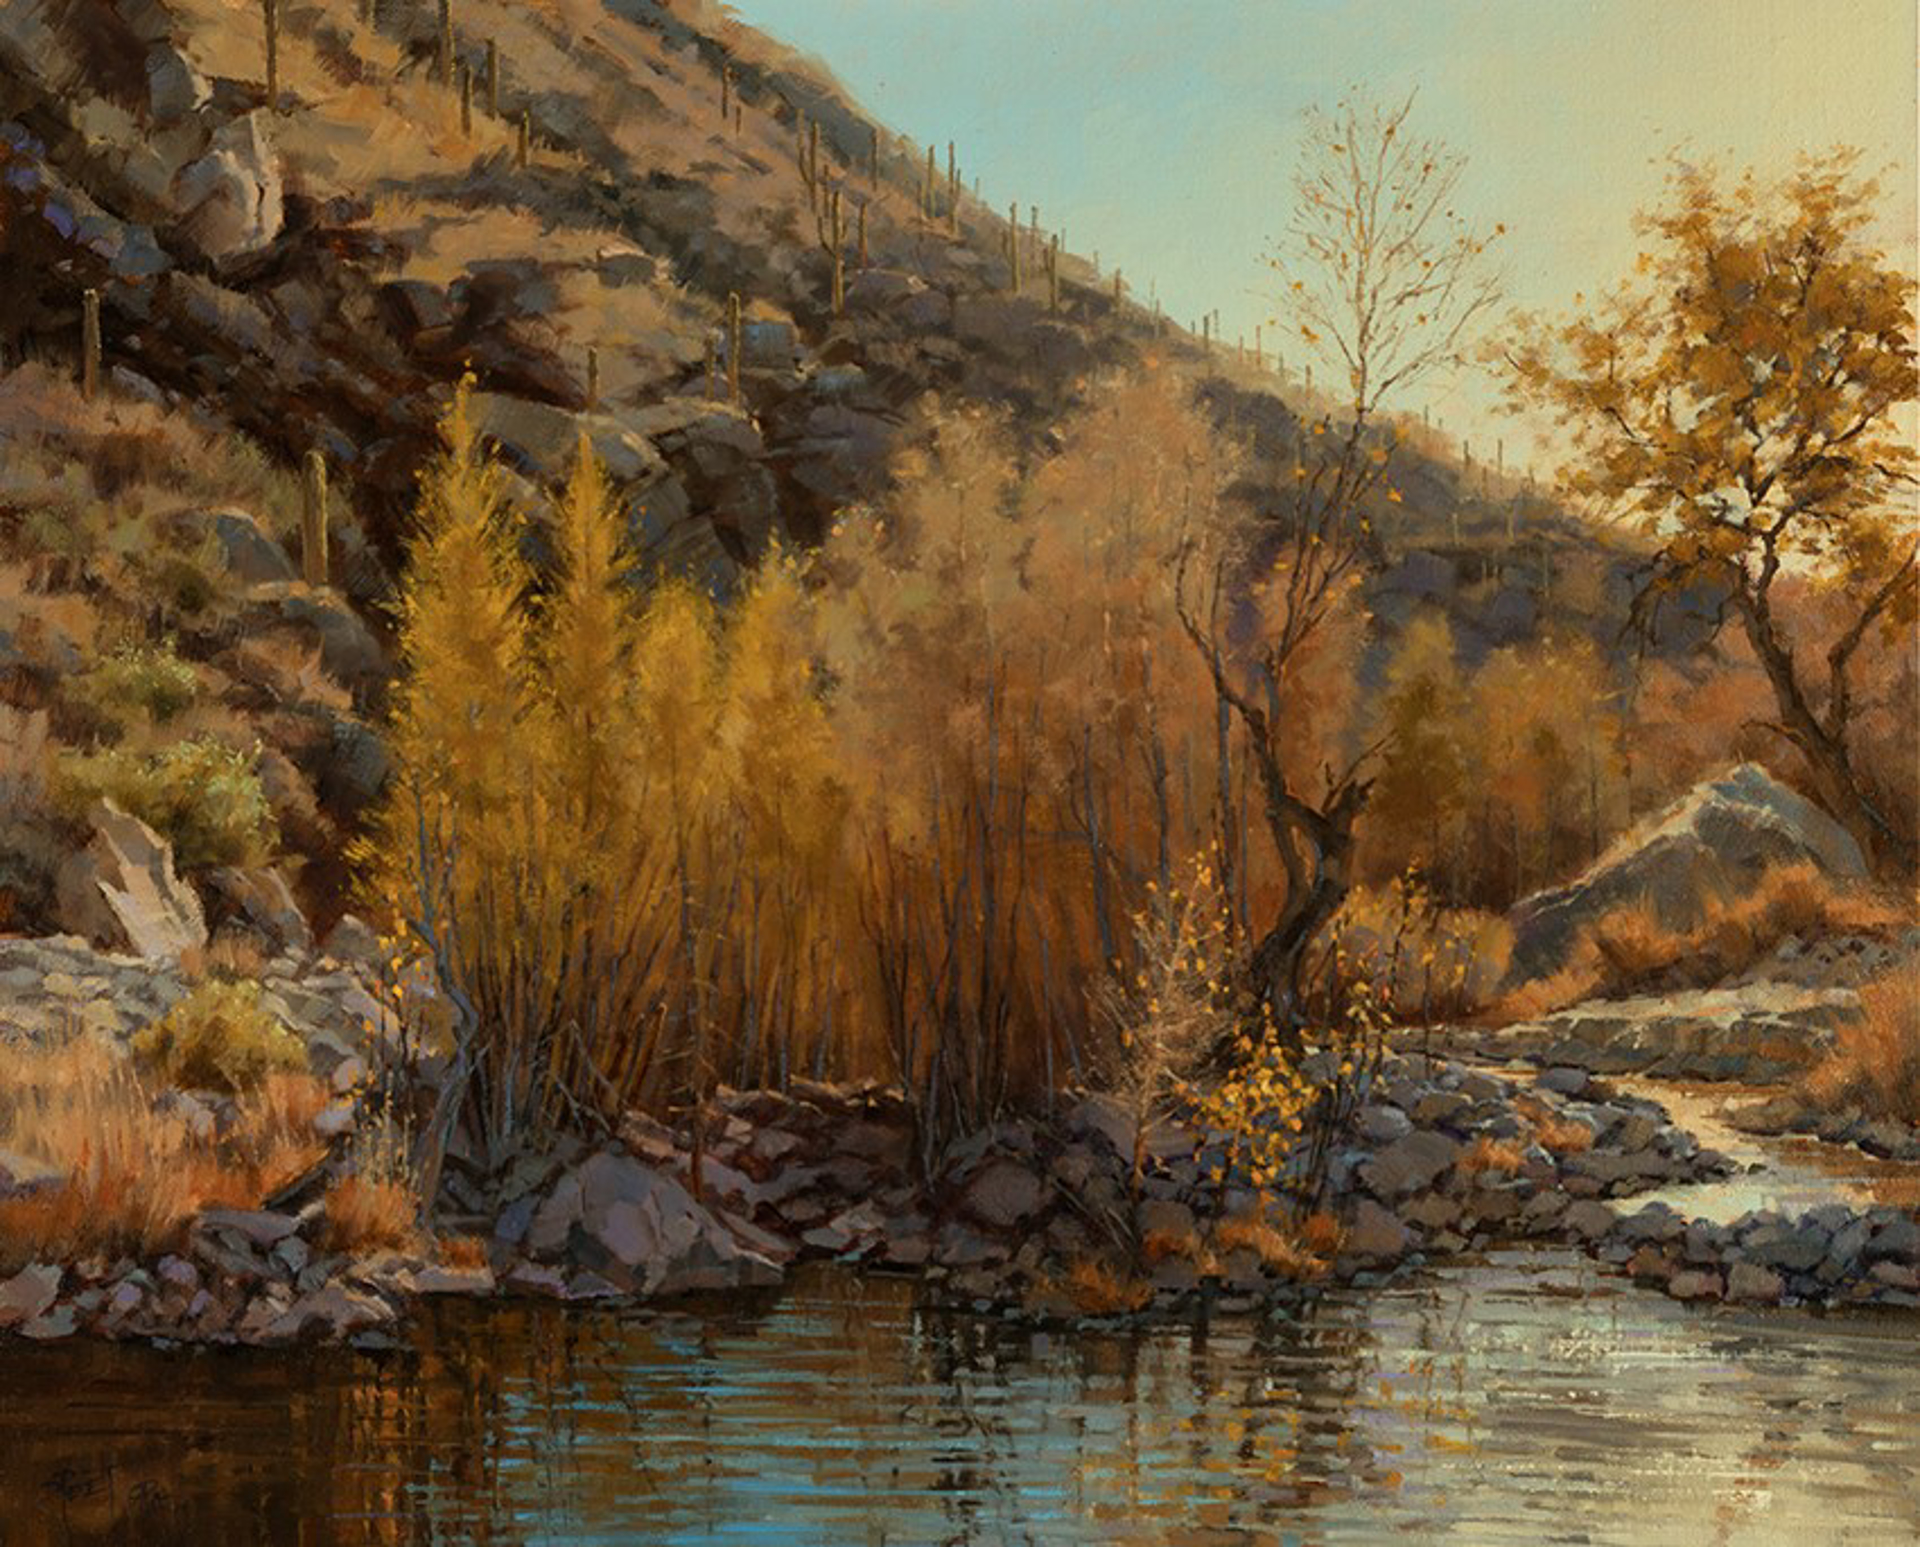 Gilded in Autumn - Sabino Canyon by Darcie Peet